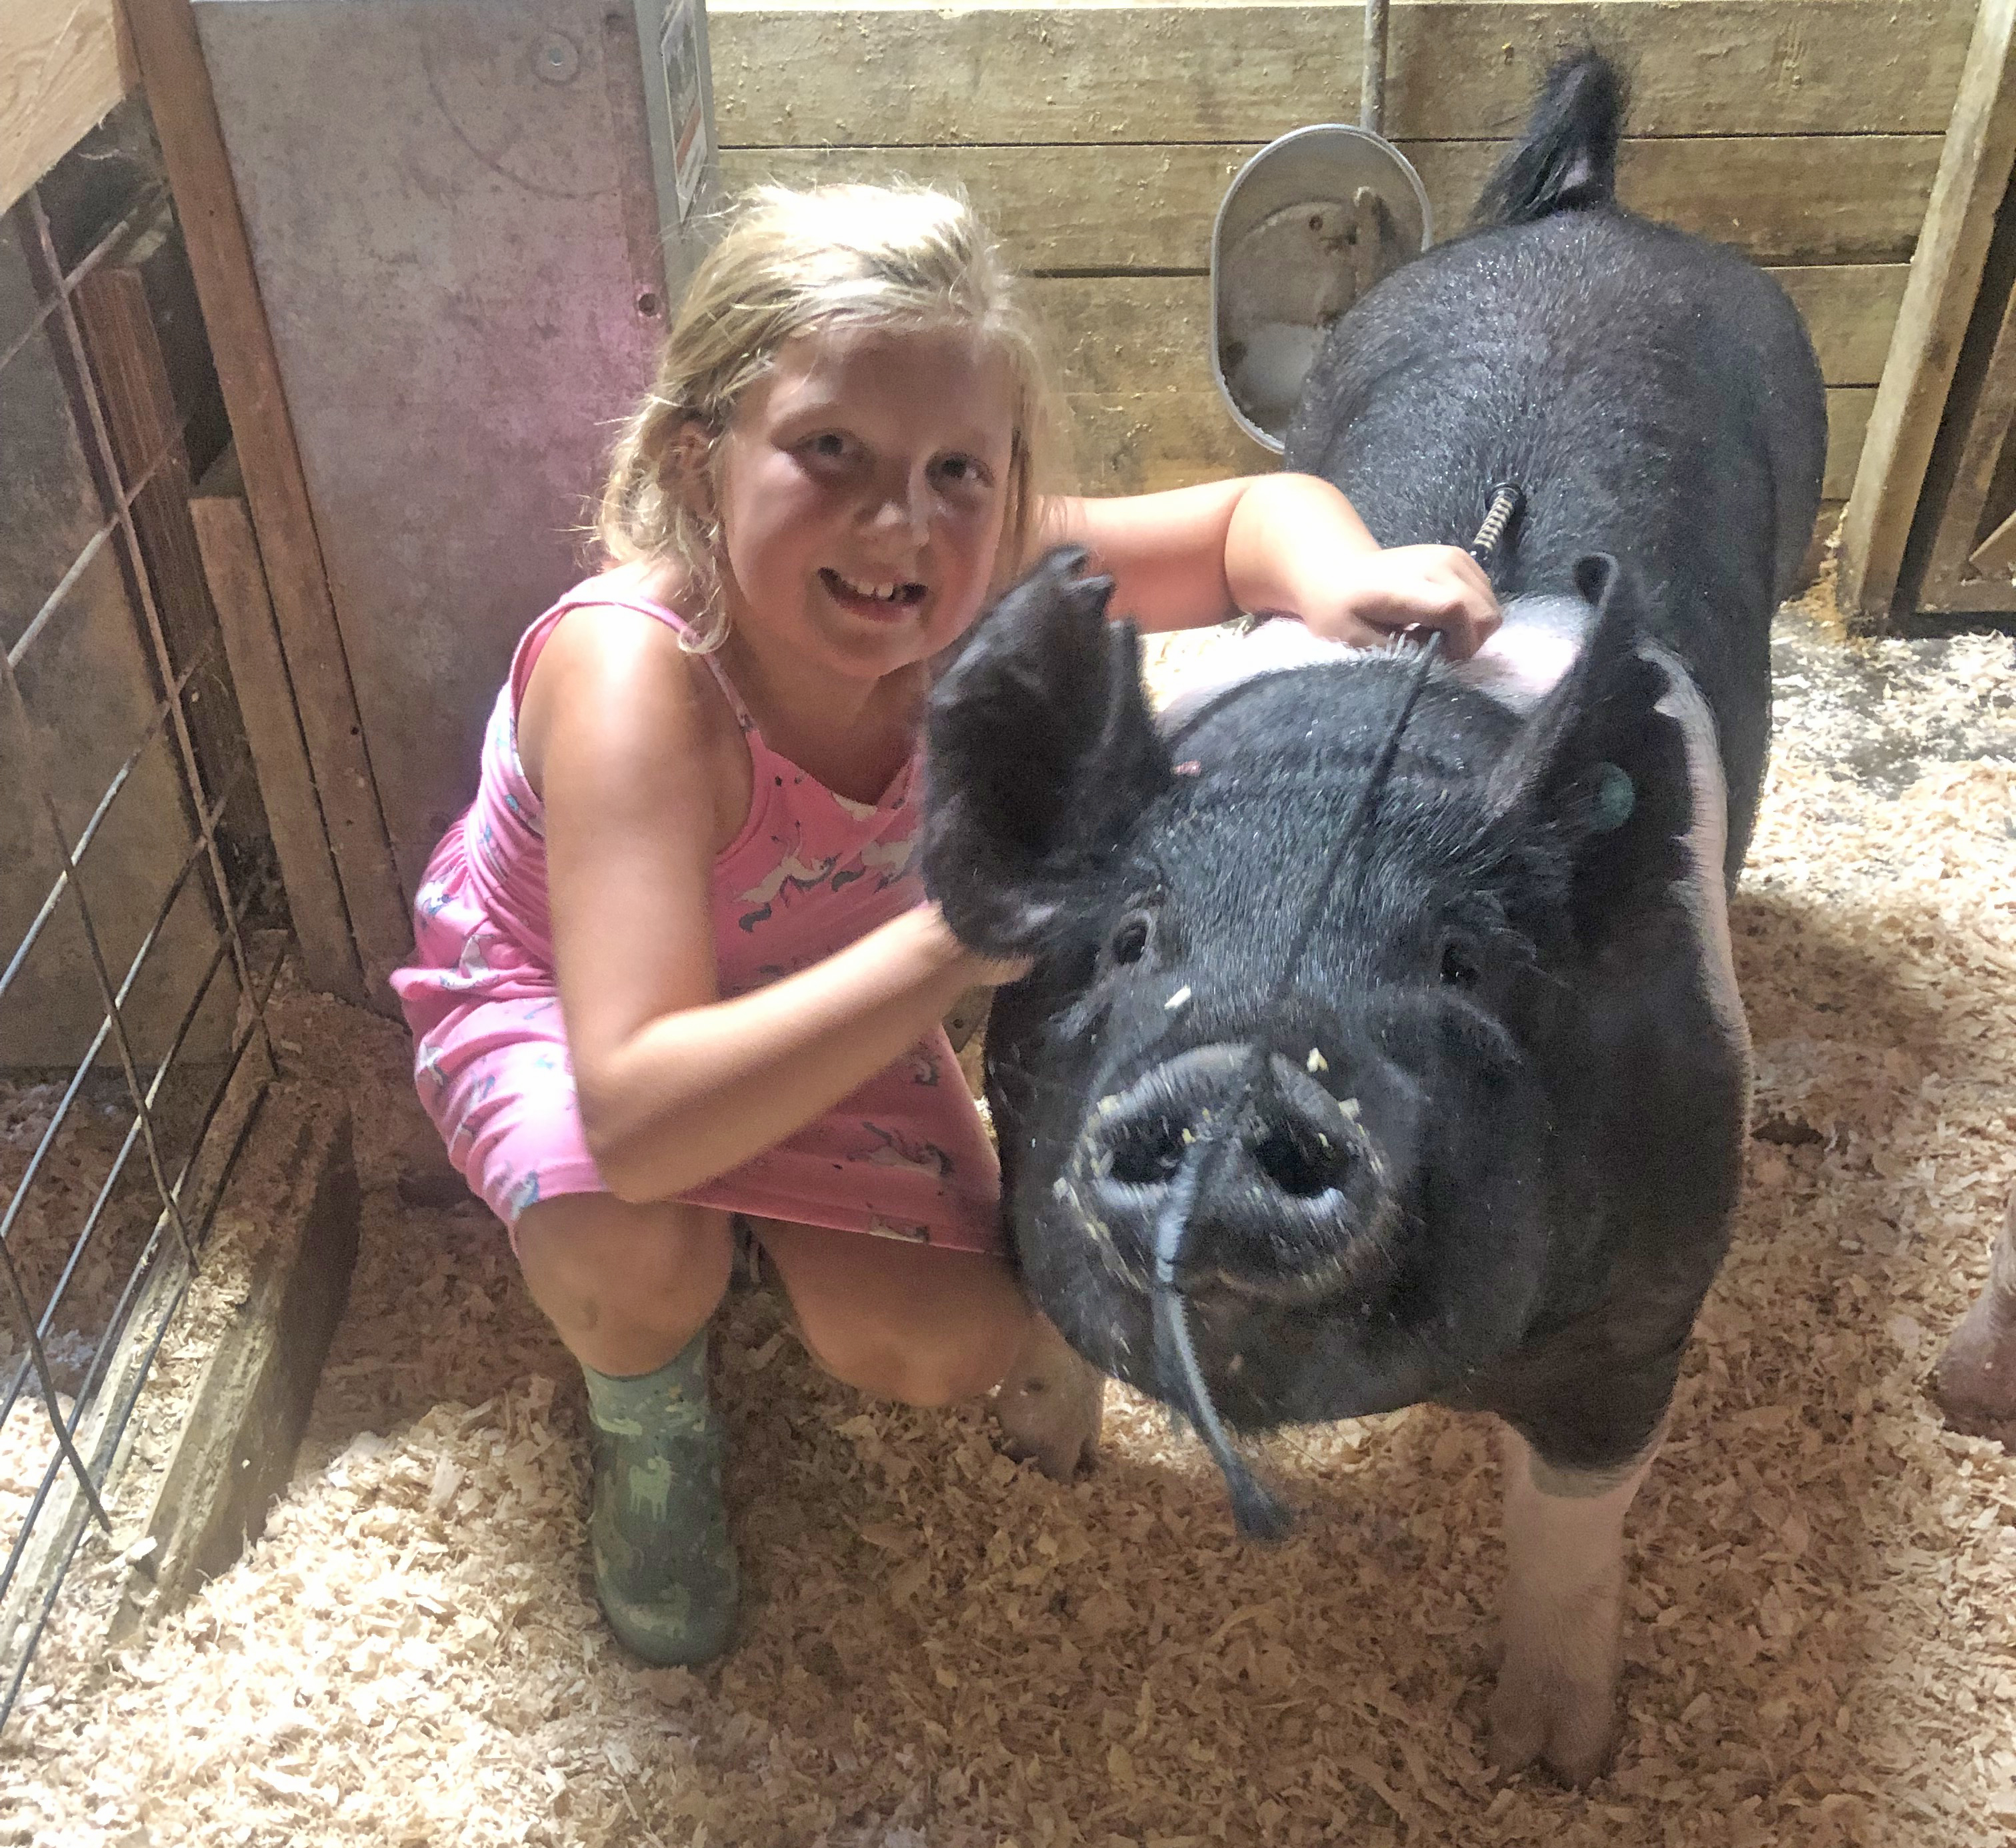 A girl posing for a picture with her pig.